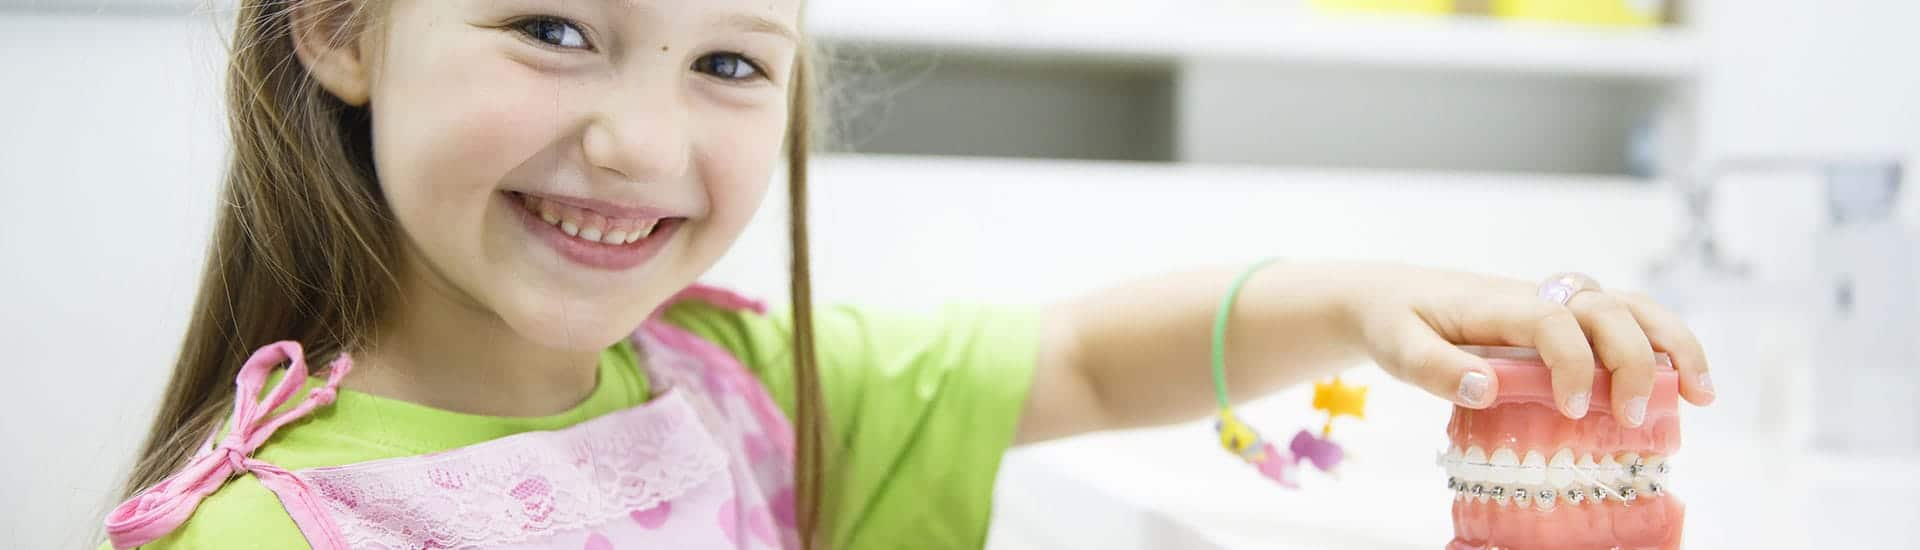 Early Orthodontic Treatment for Children in The Woodlands, Texas